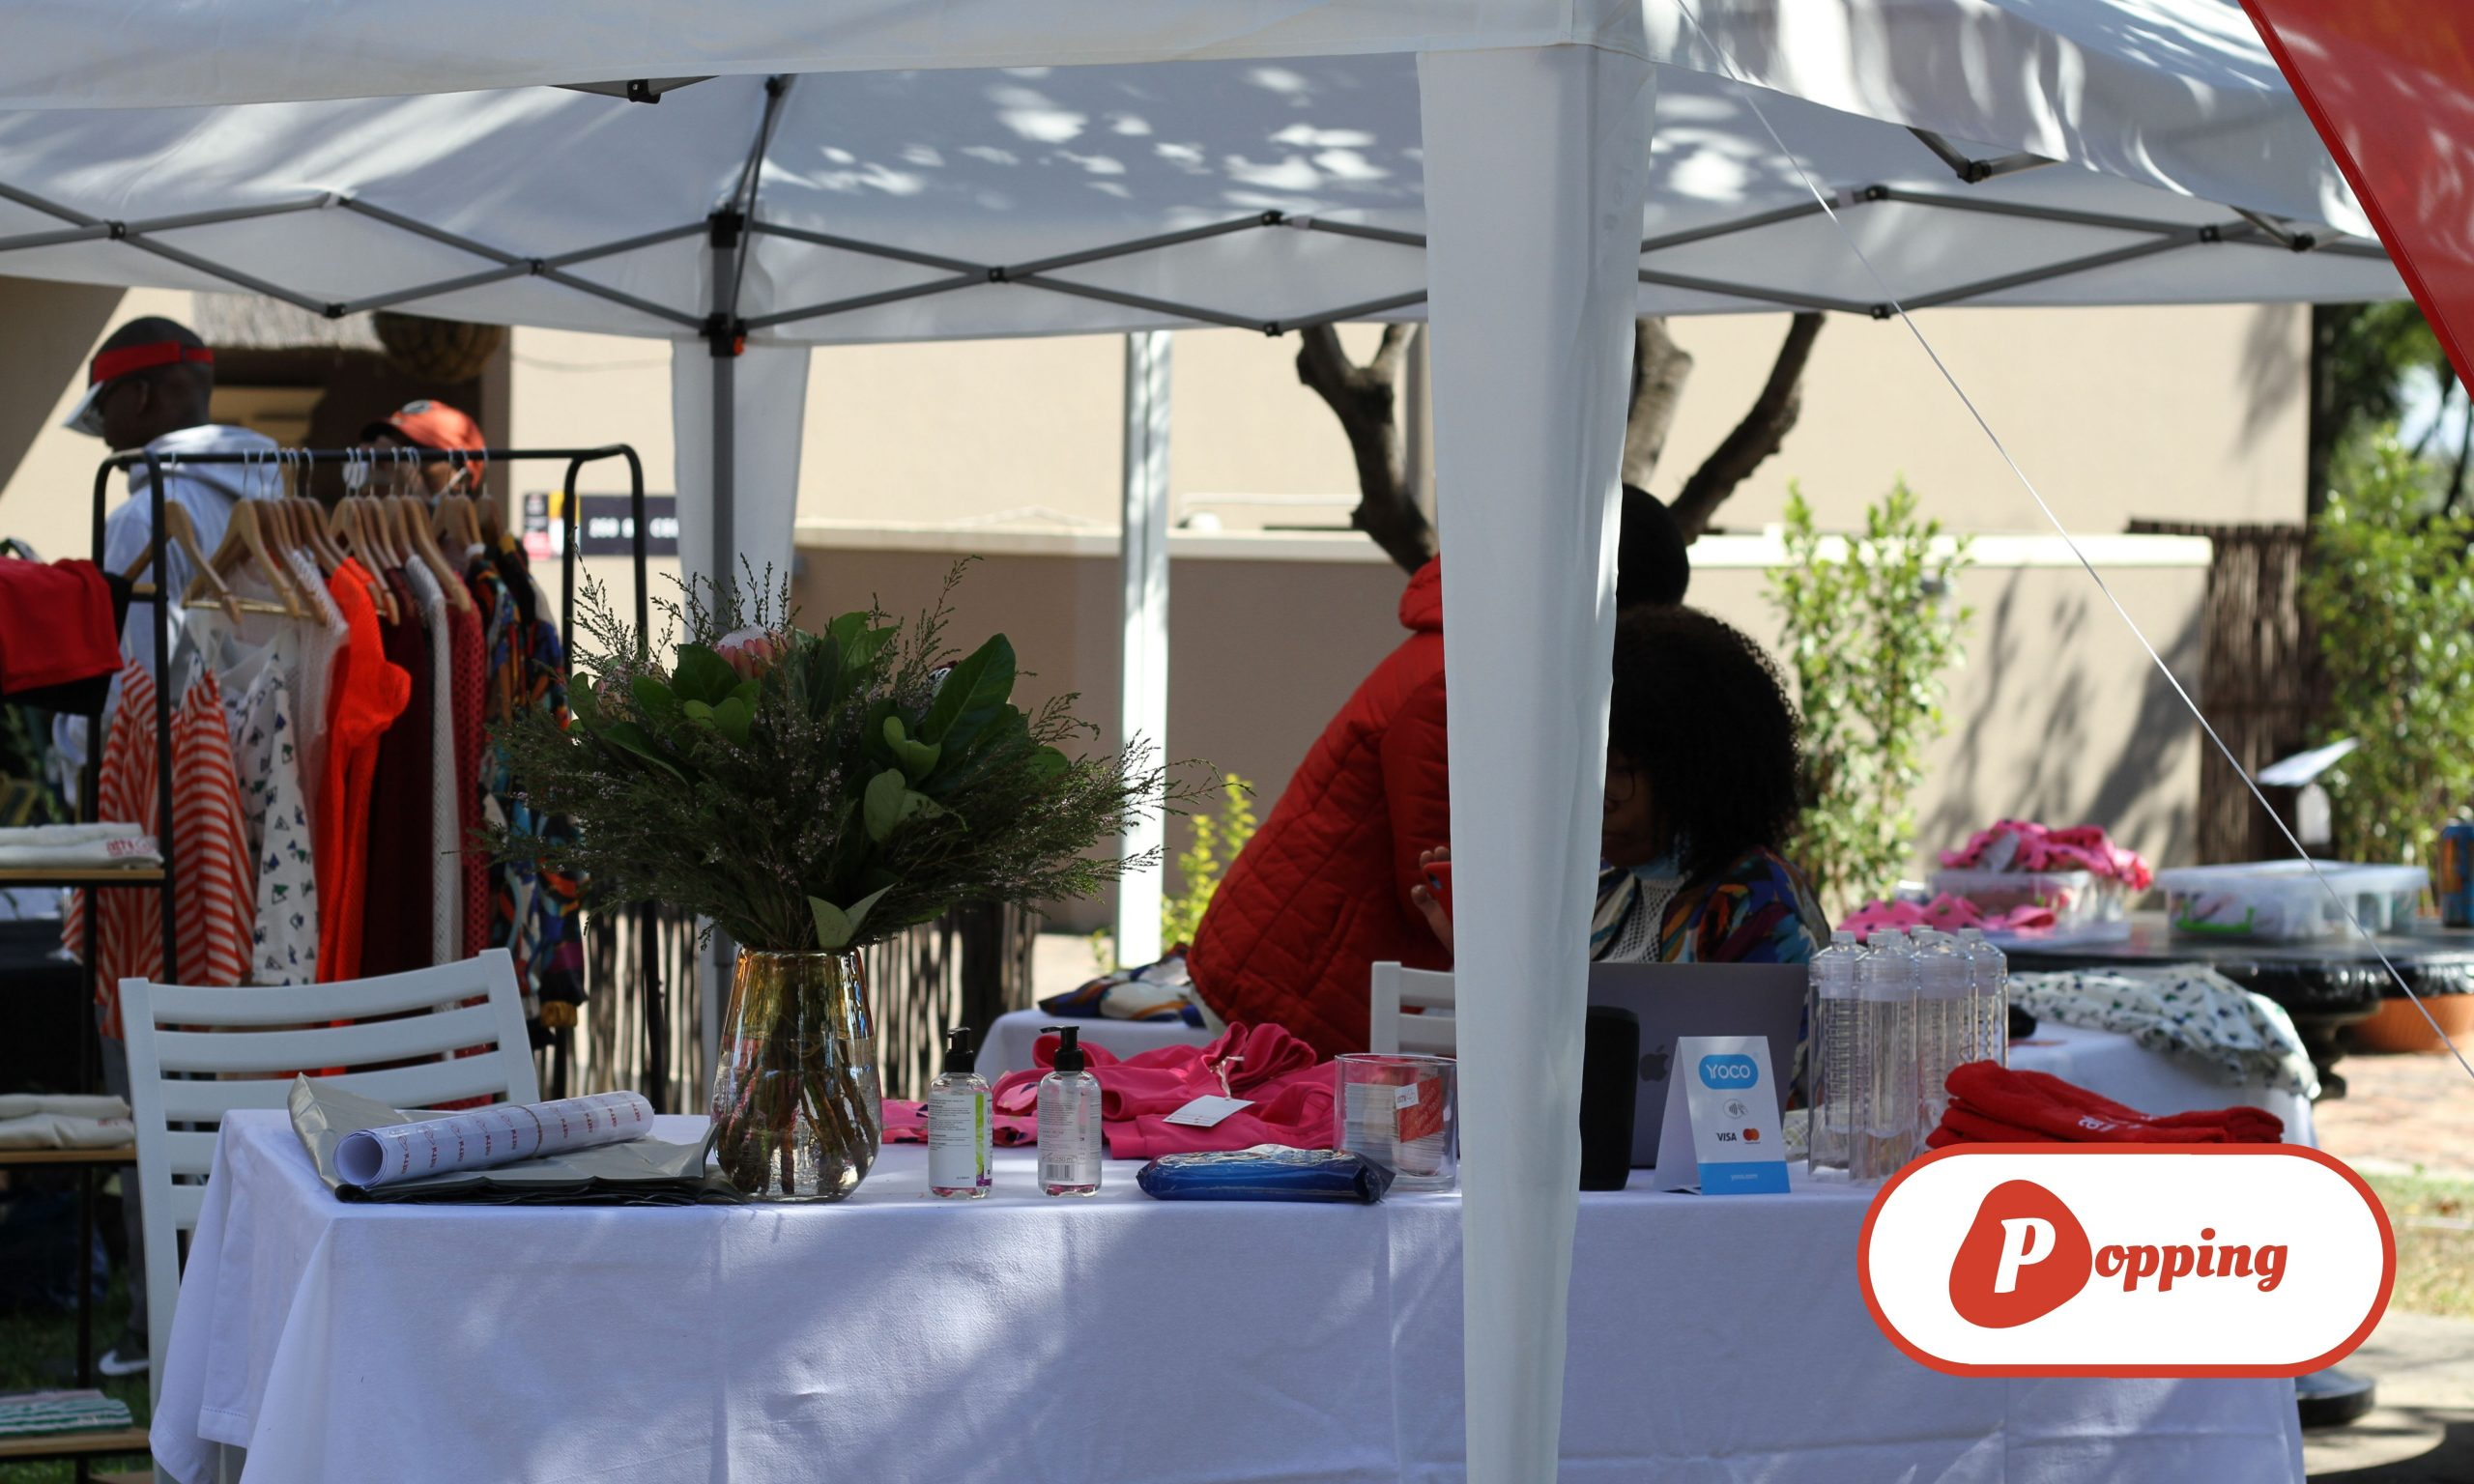 Athi Fitness pop-up